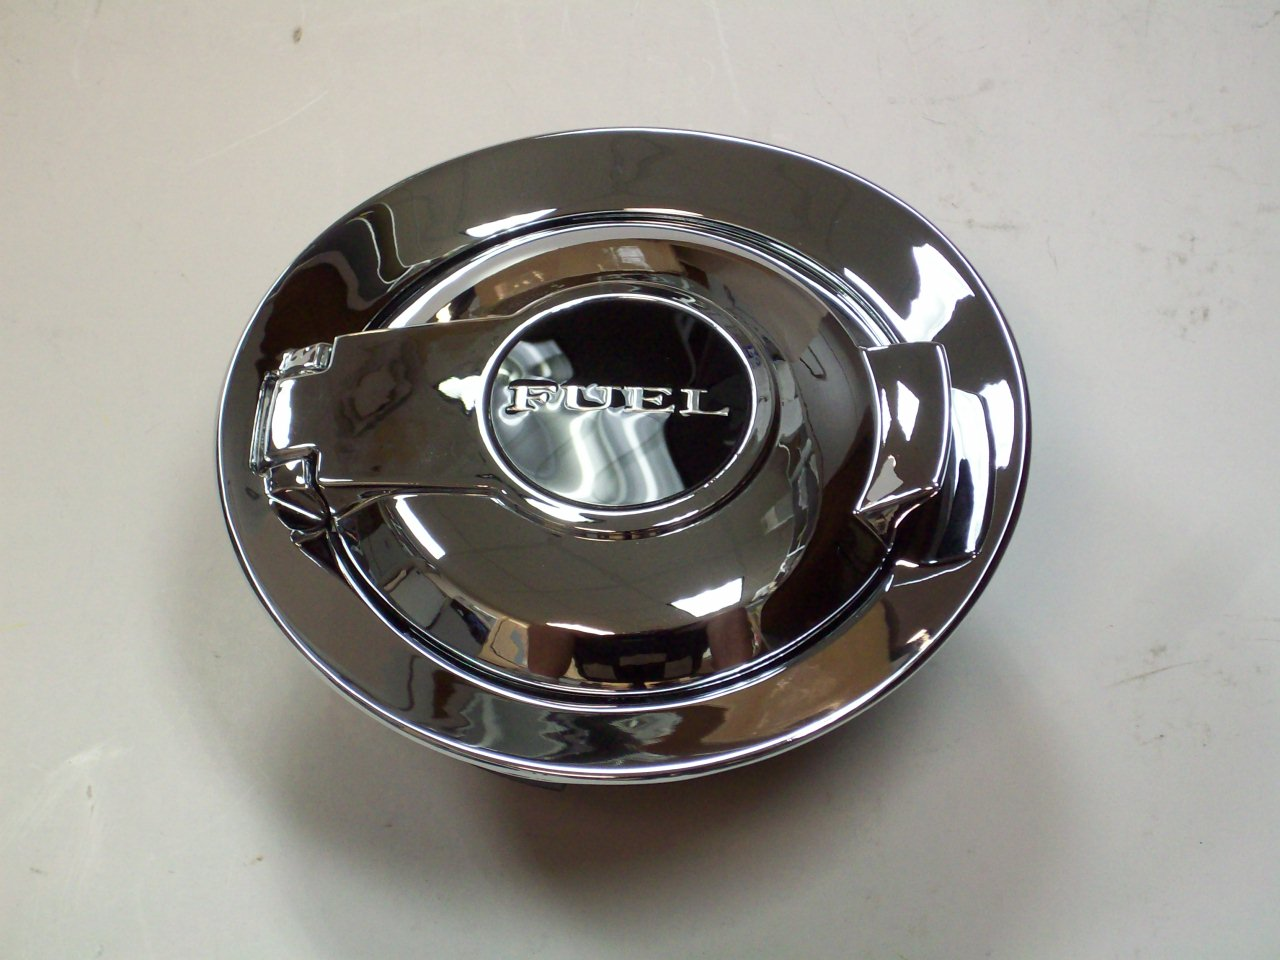 dodge chrysler oem 11 16 challenger fuel door gas cap. Black Bedroom Furniture Sets. Home Design Ideas